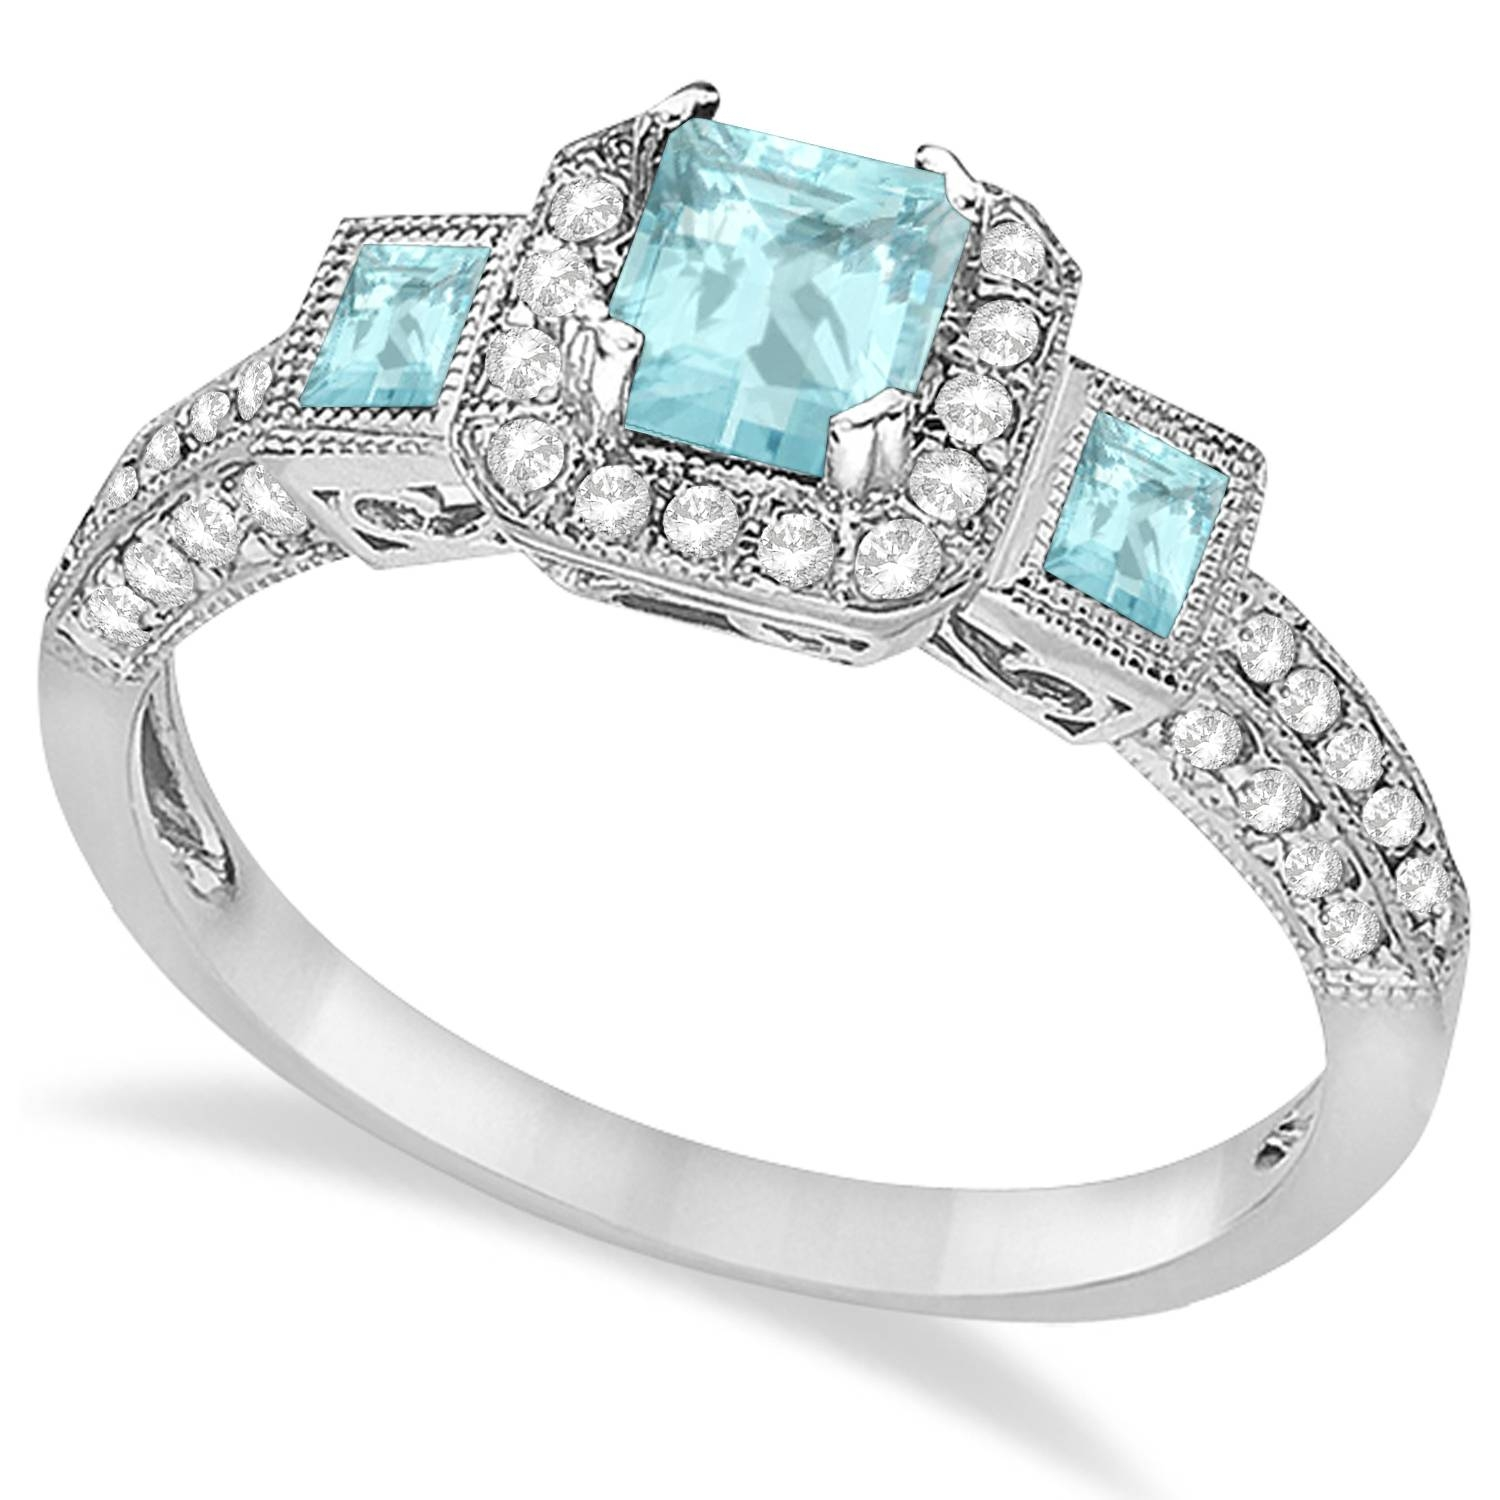 Aquamarine & Diamond Engagement Ring 14K White Gold  (View 4 of 15)